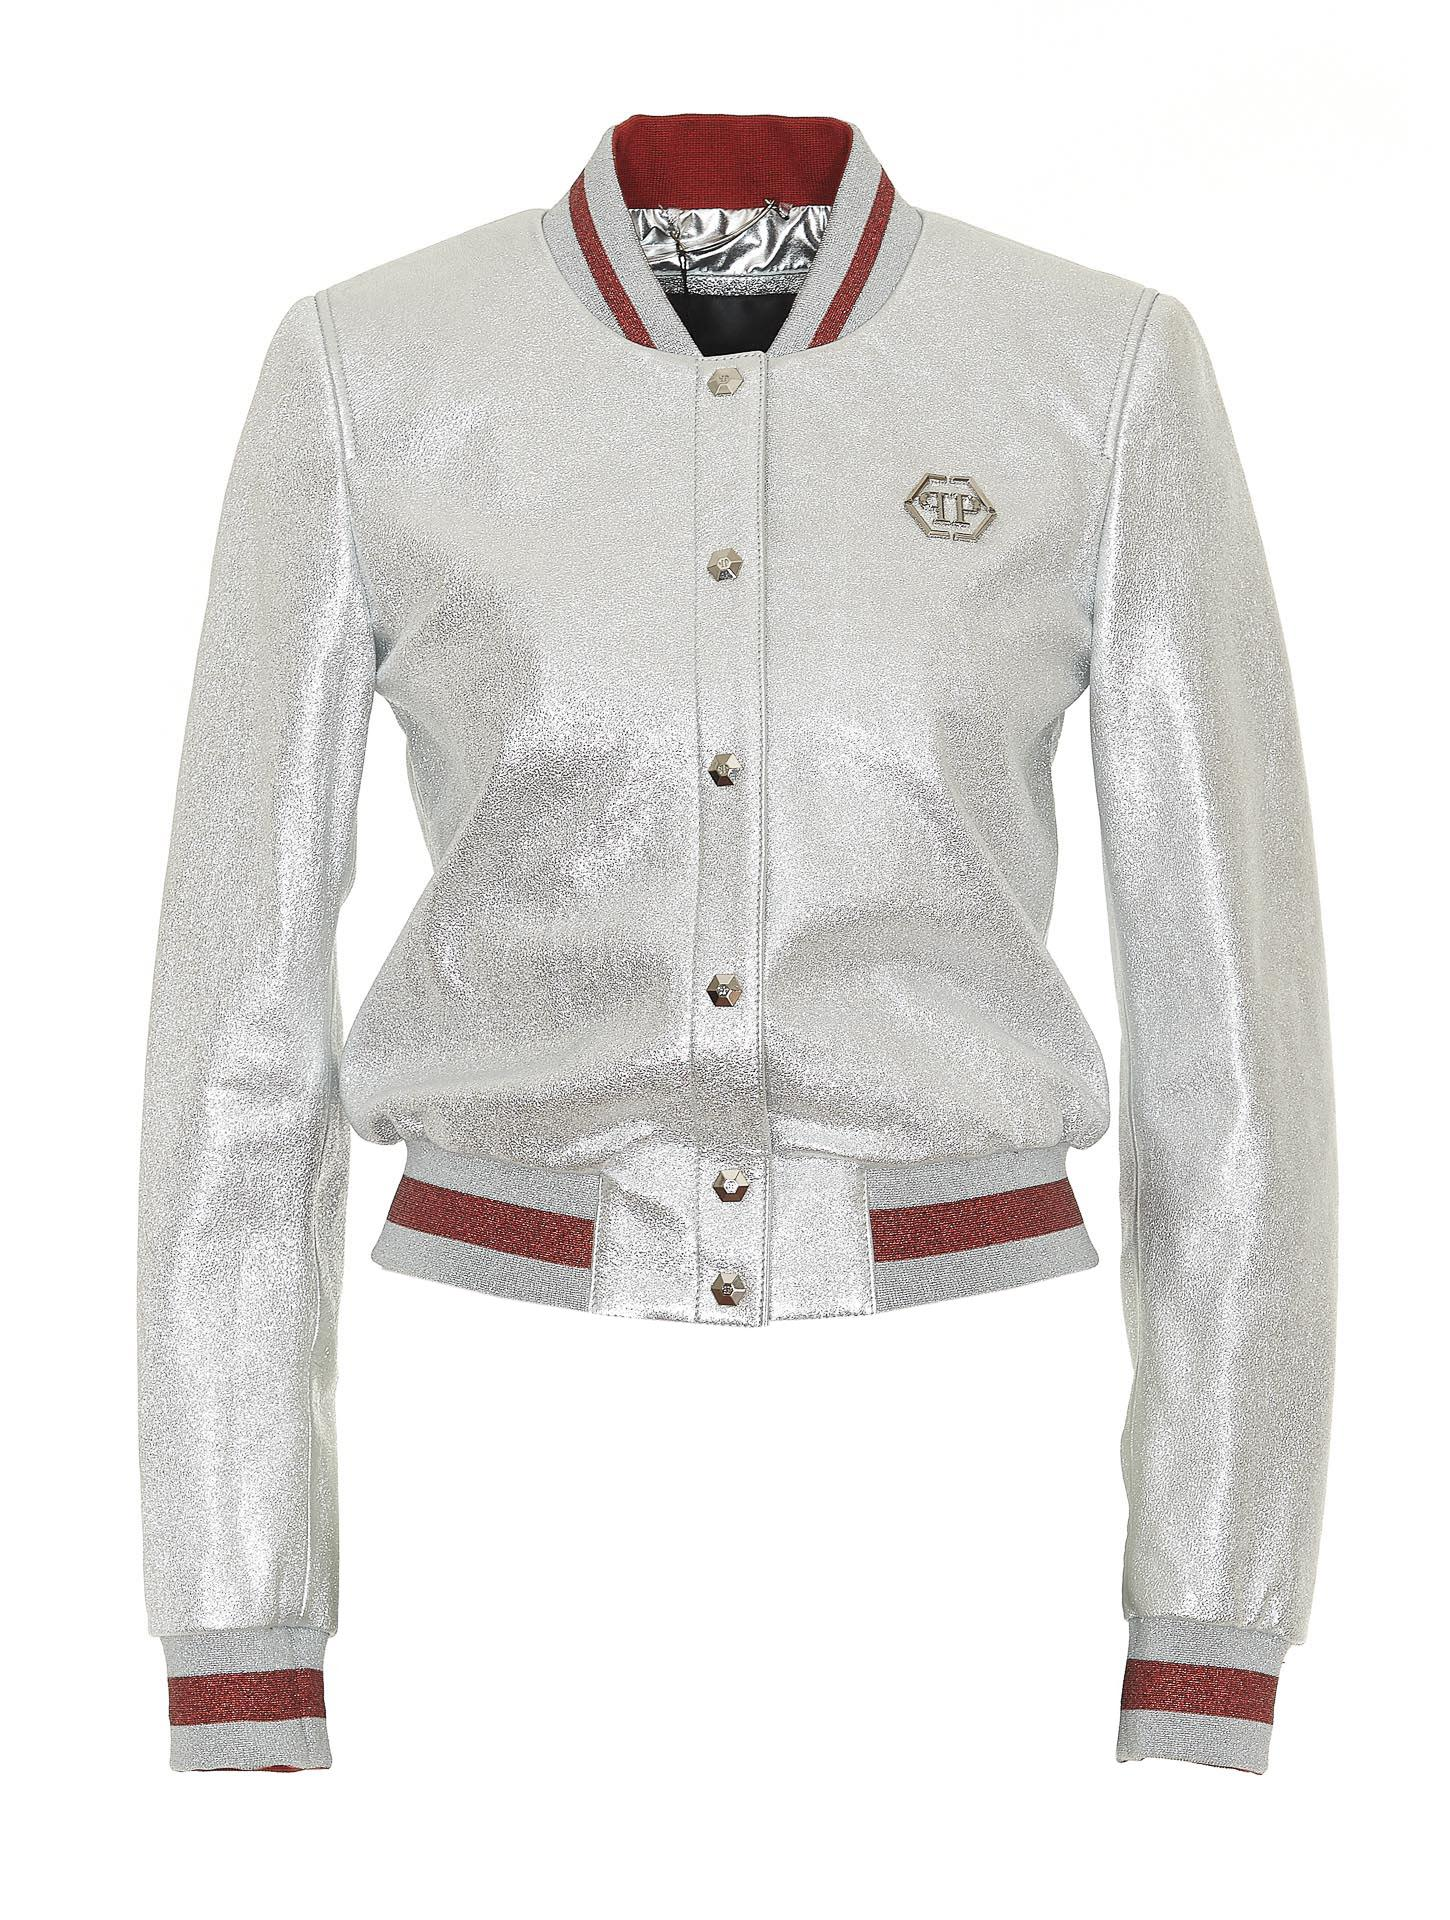 Philipp Plein Ivory bomber jacket Fake Cheap Price Free Shipping Extremely Outlet Order Discount Wide Range Of Outlet Locations Online rHjjH9g